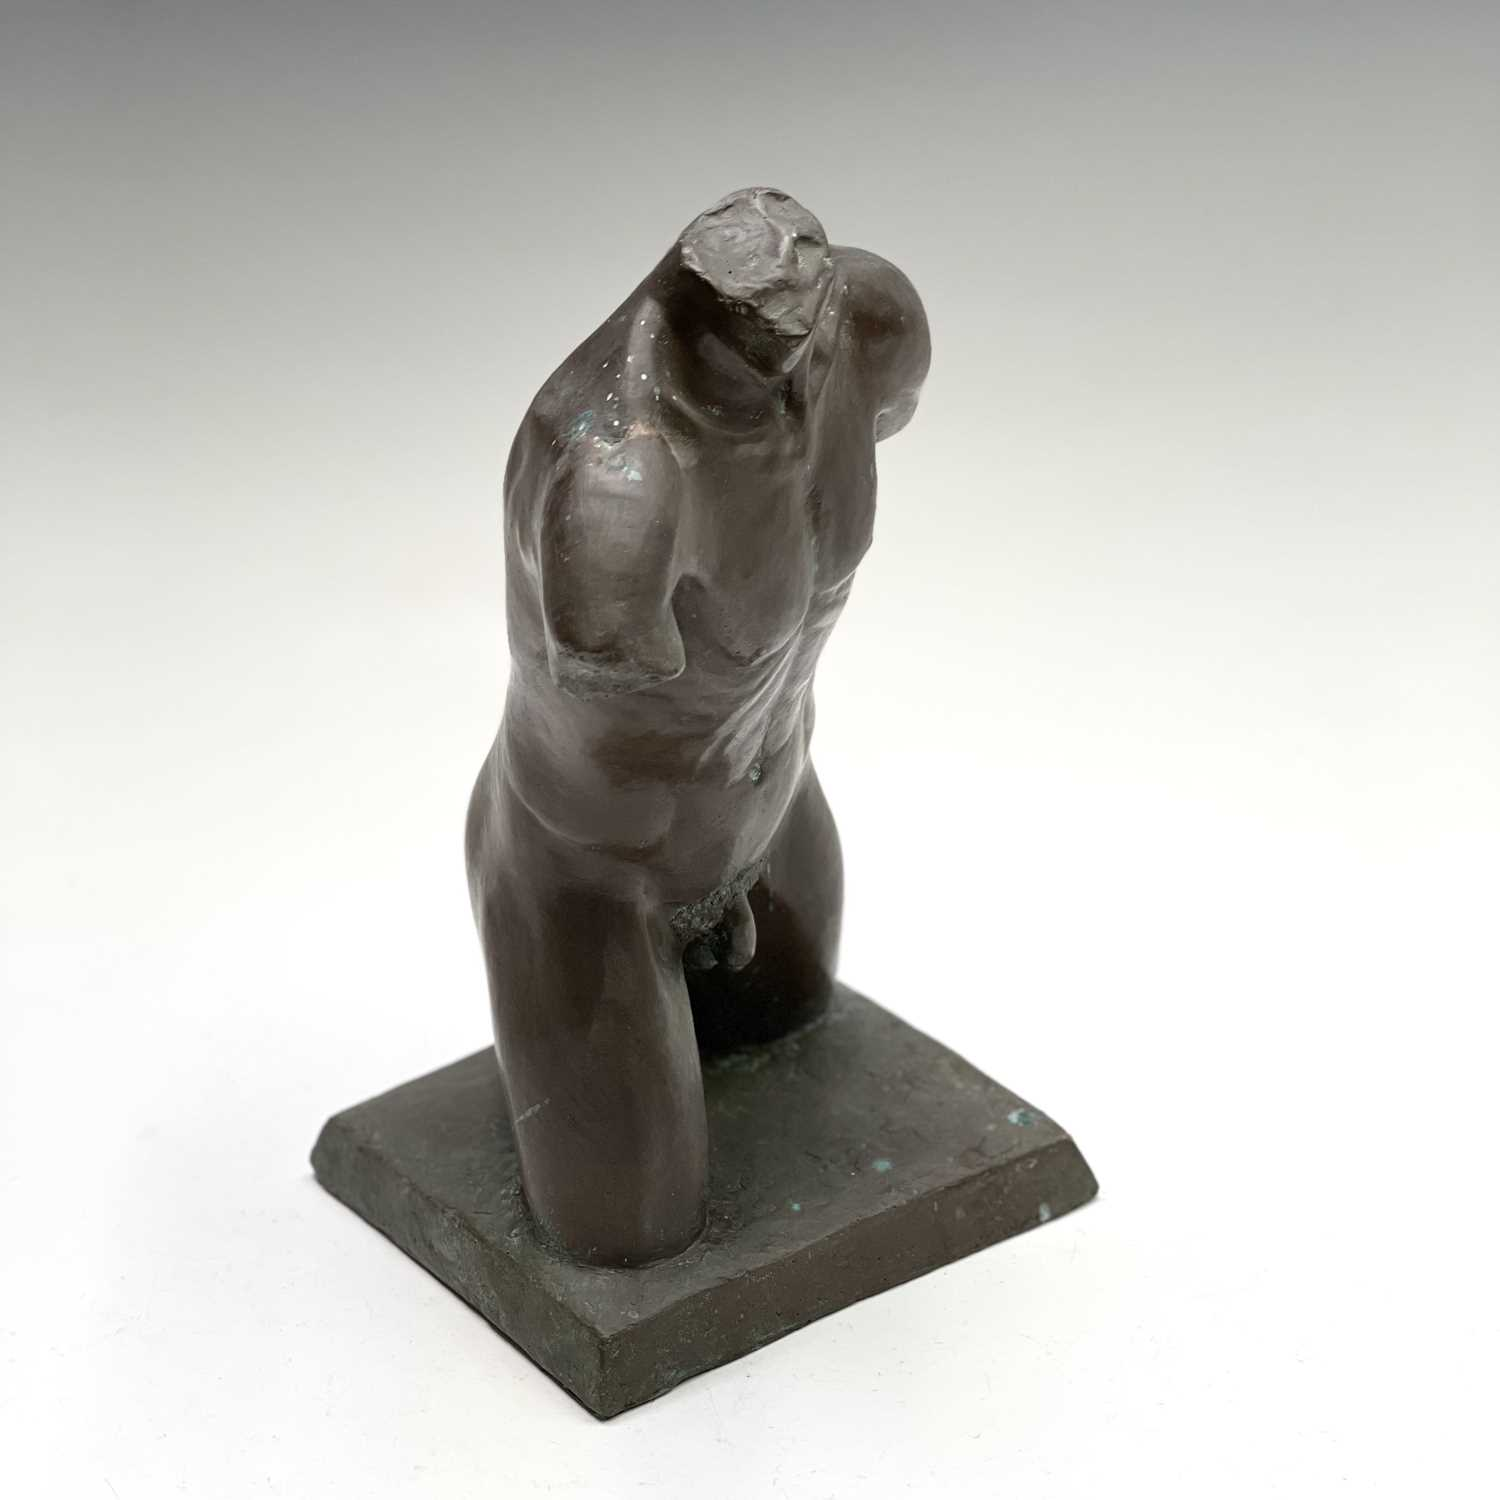 Alec WILES (1924)Males Torso Bronzed resin sculpture Signed and dated 1995Height 27cm - Image 10 of 10